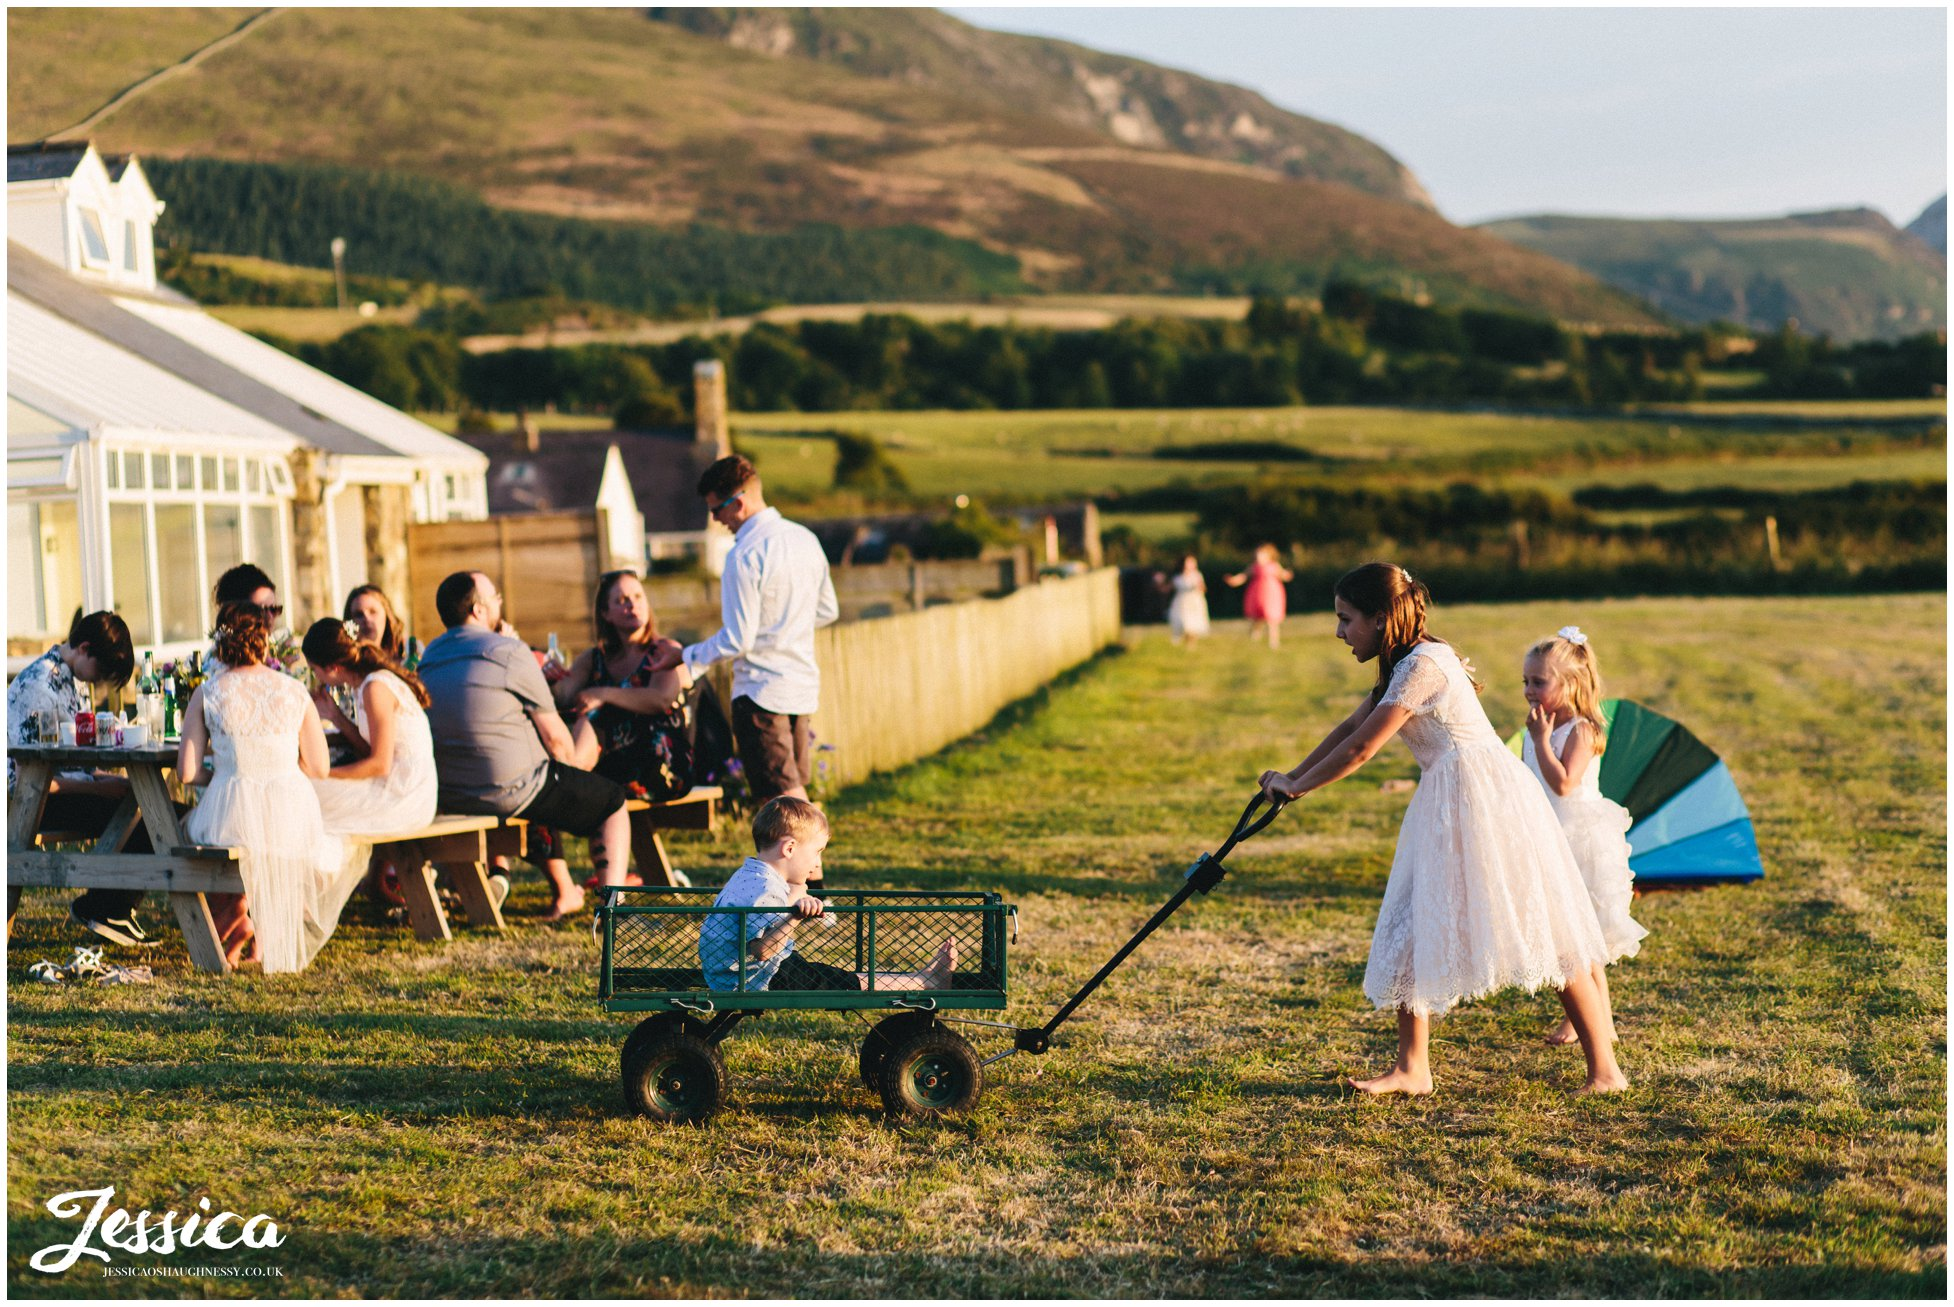 bridesmaid drags young child around in a trailer